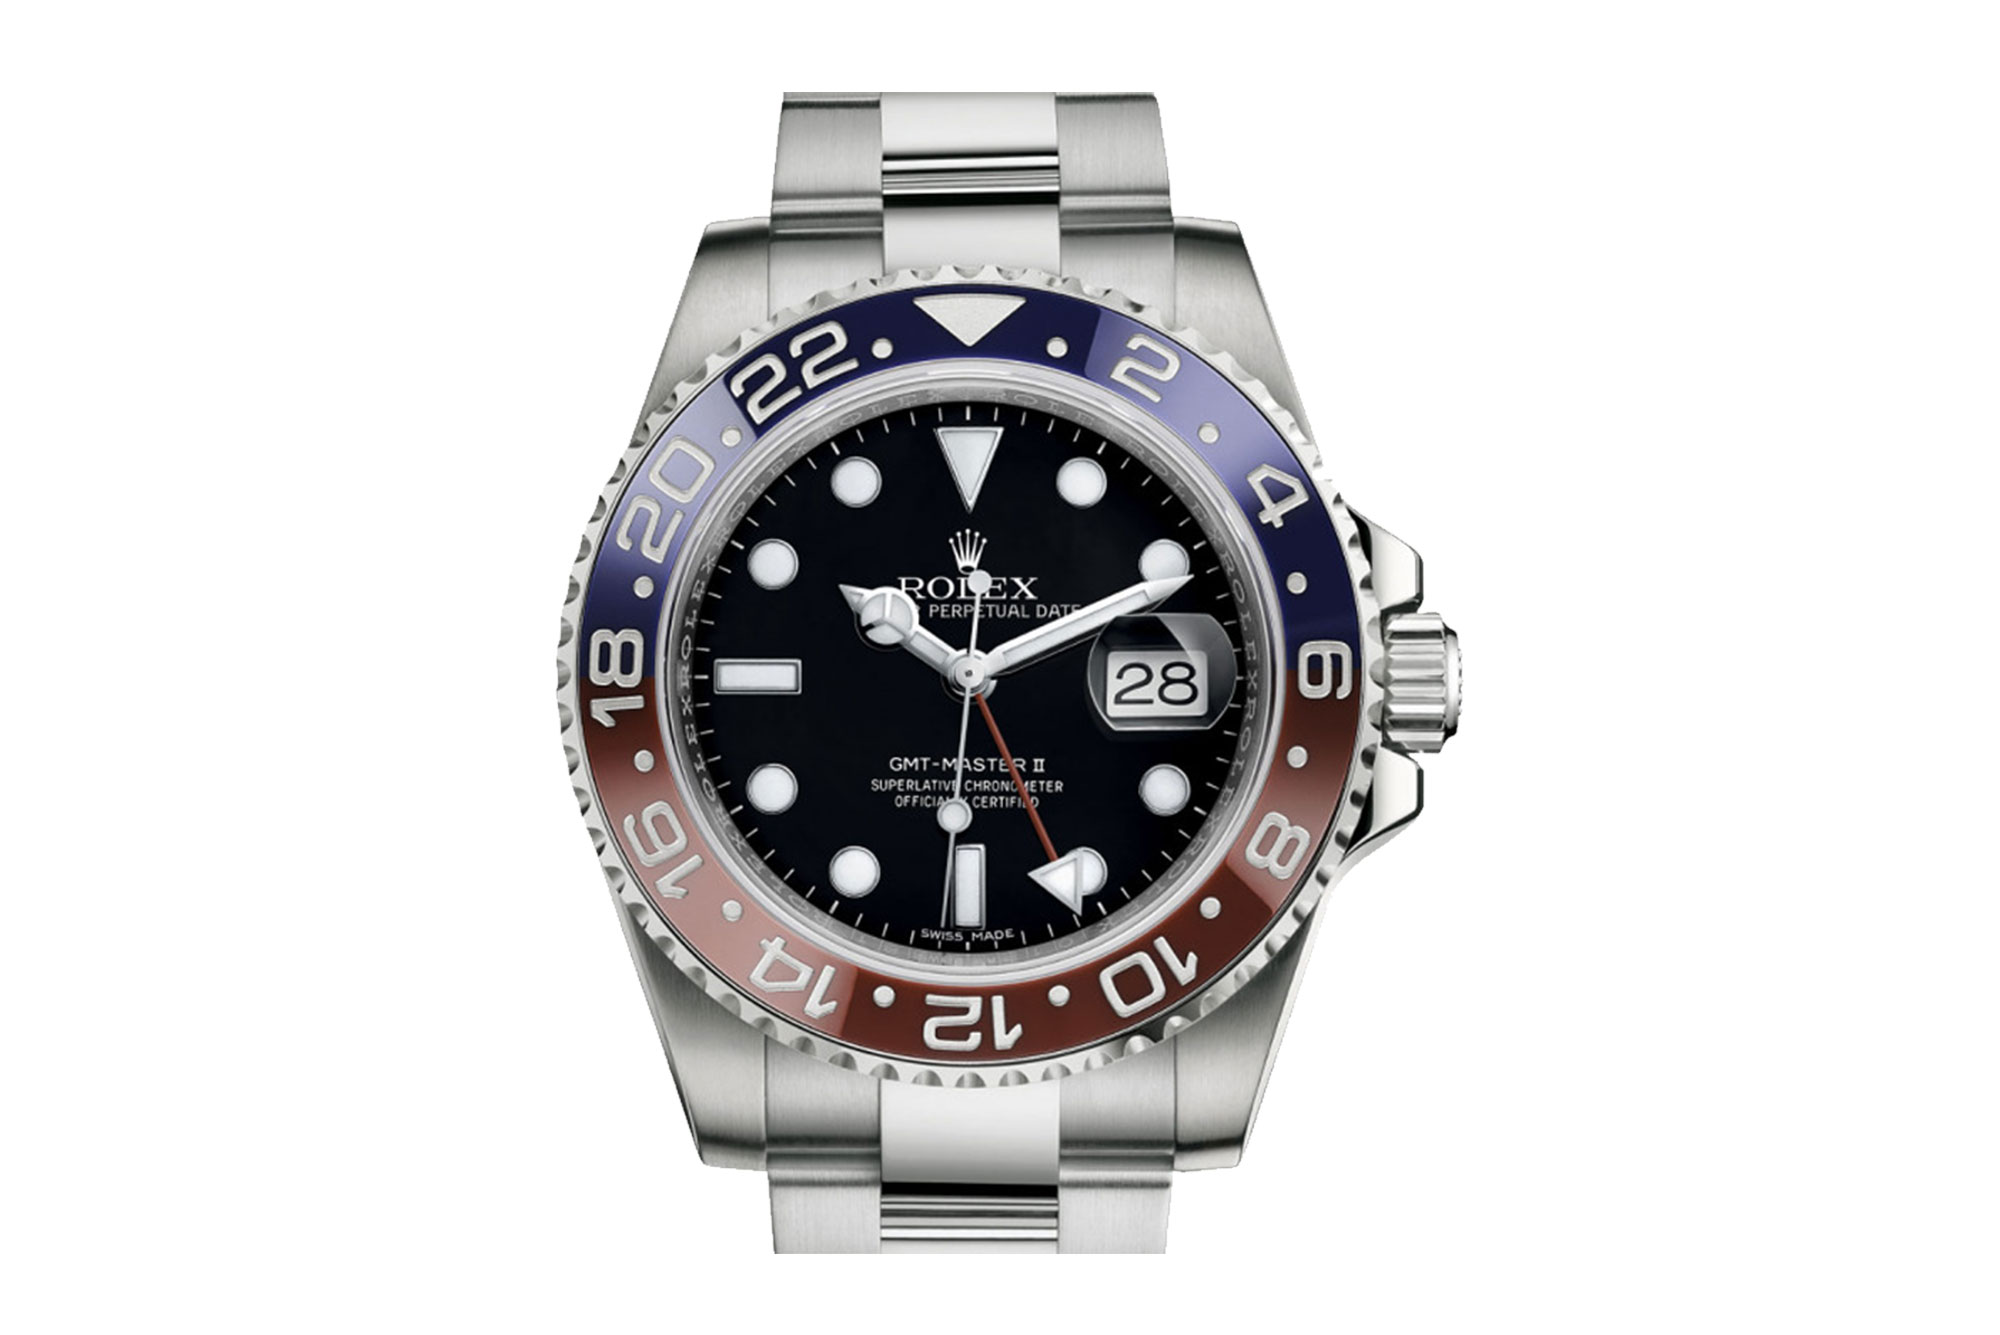 ROLEX OYSTER, 40 MM GMT-MASTER II – NOW IN STORE!